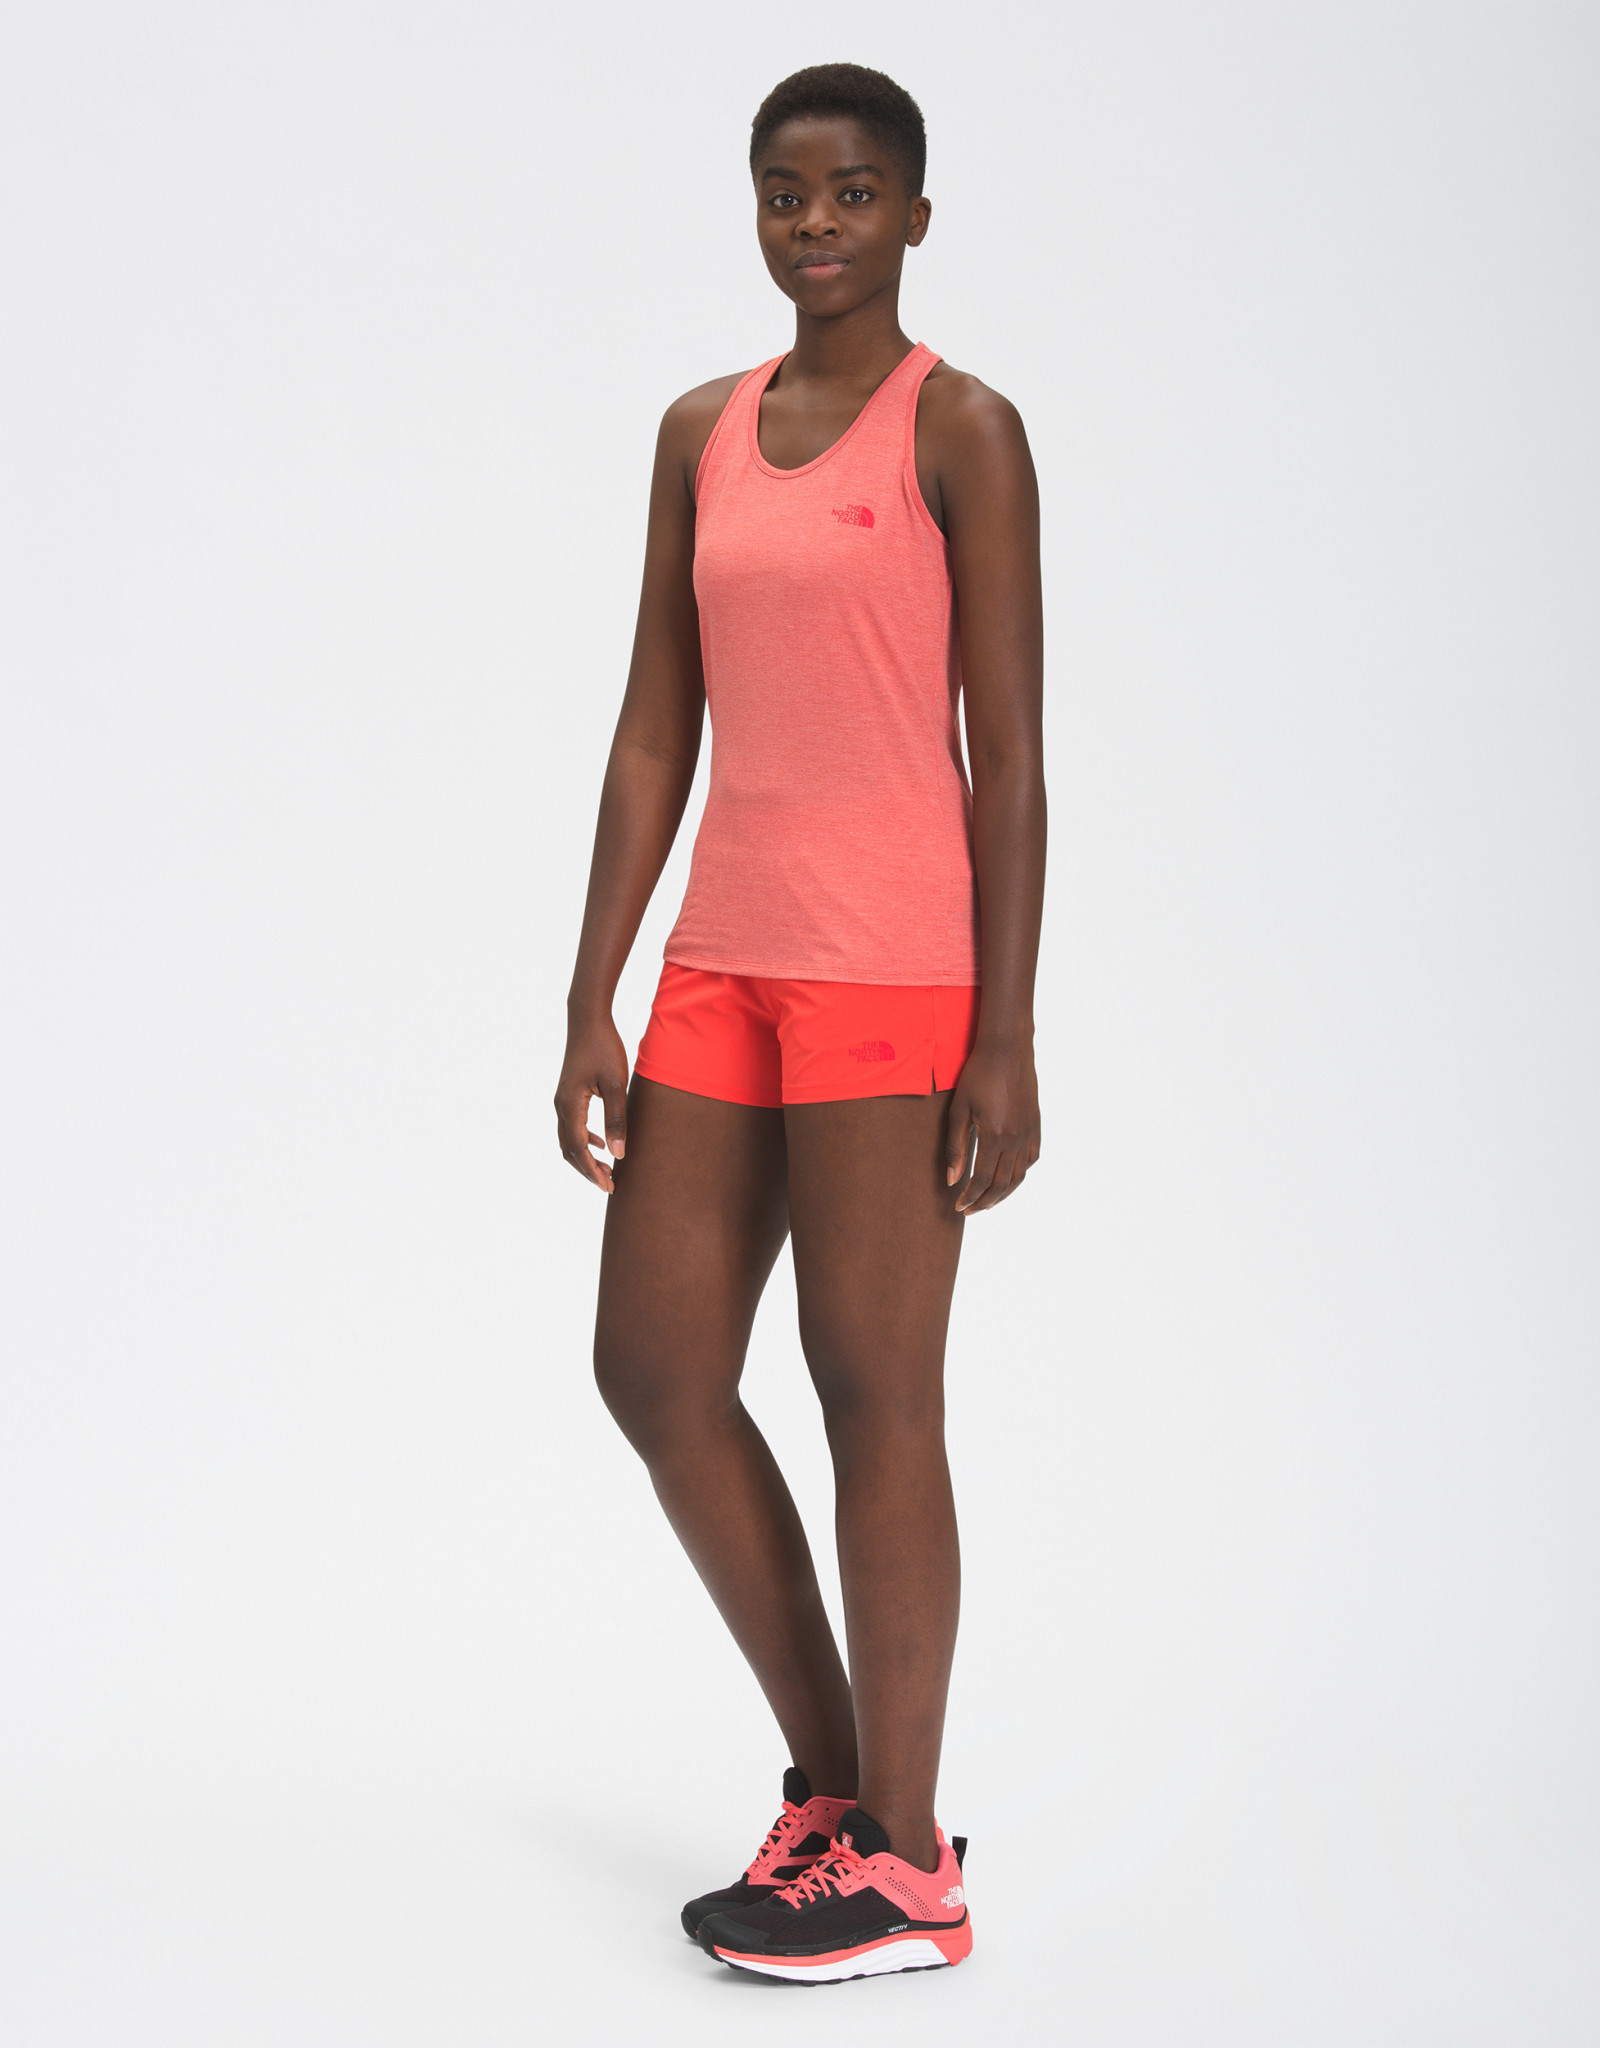 The North Face The North Face Women's Wander Tank -S2021